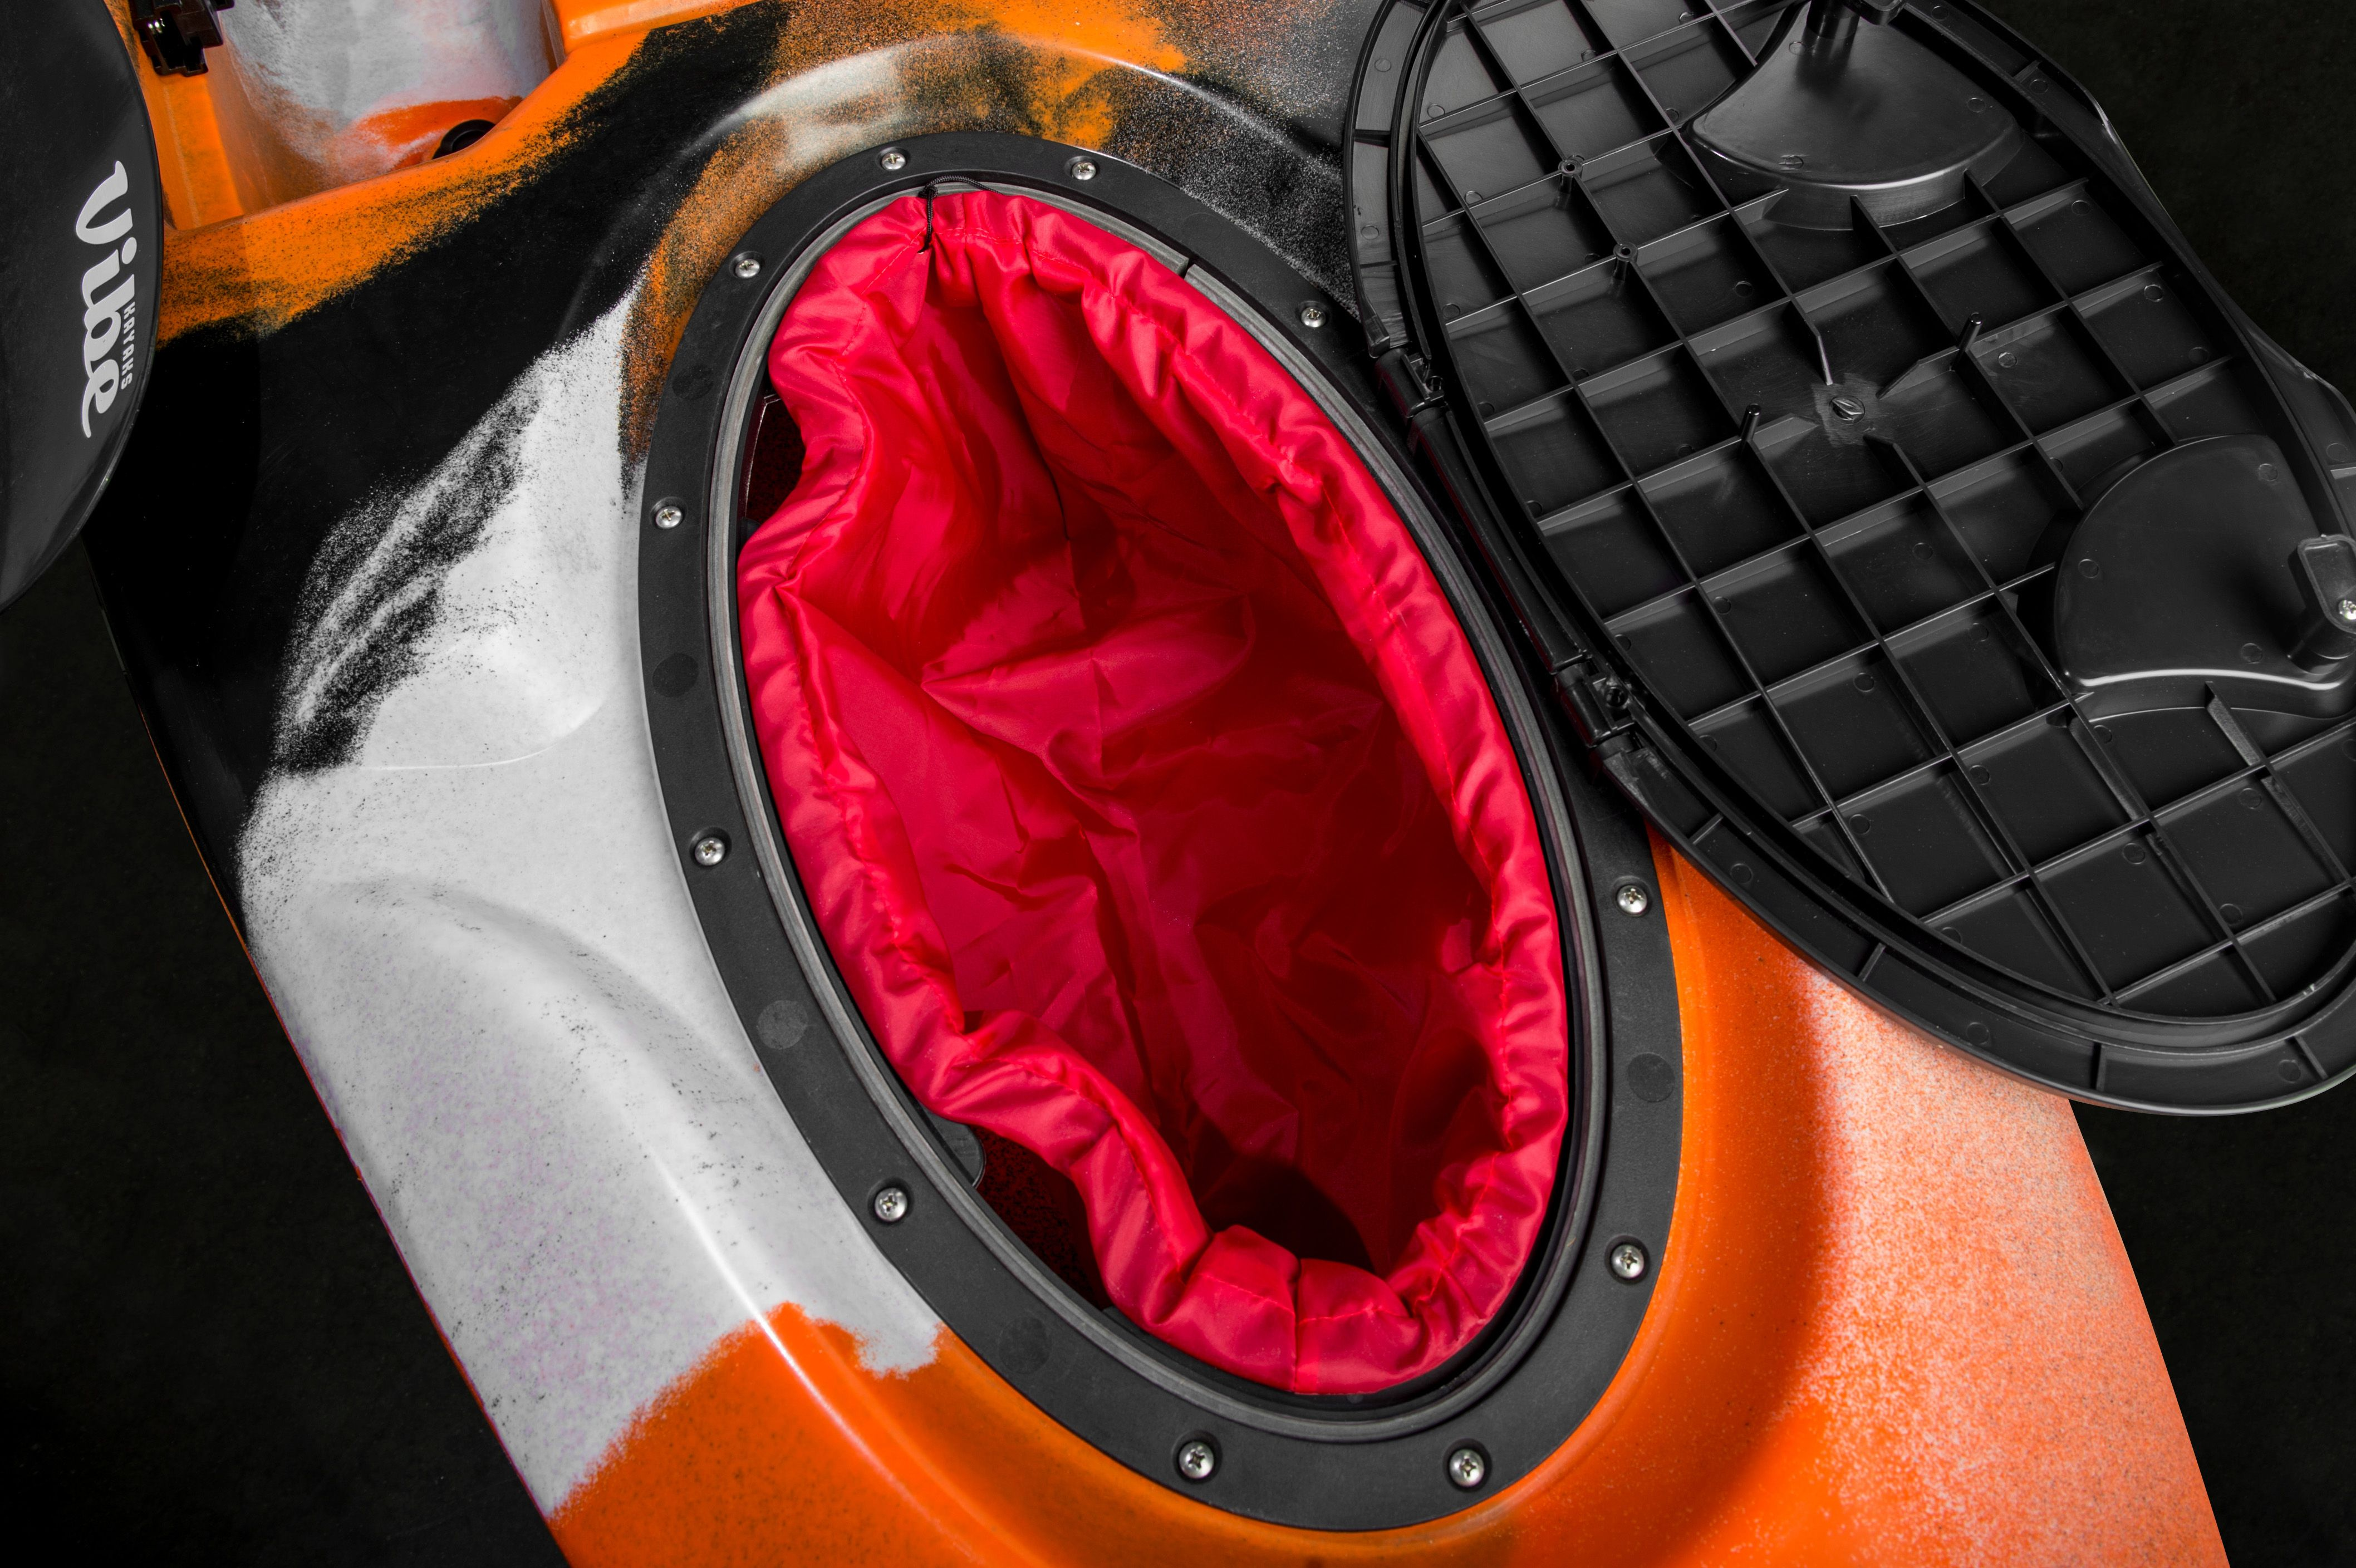 Gain Hull Access And Interior Storage With The 20 Oval Kayak Hatch Perfect For Stowing Dry Bags And Larger Gear Inside Th Angler Kayak Kayaking Fish In A Bag